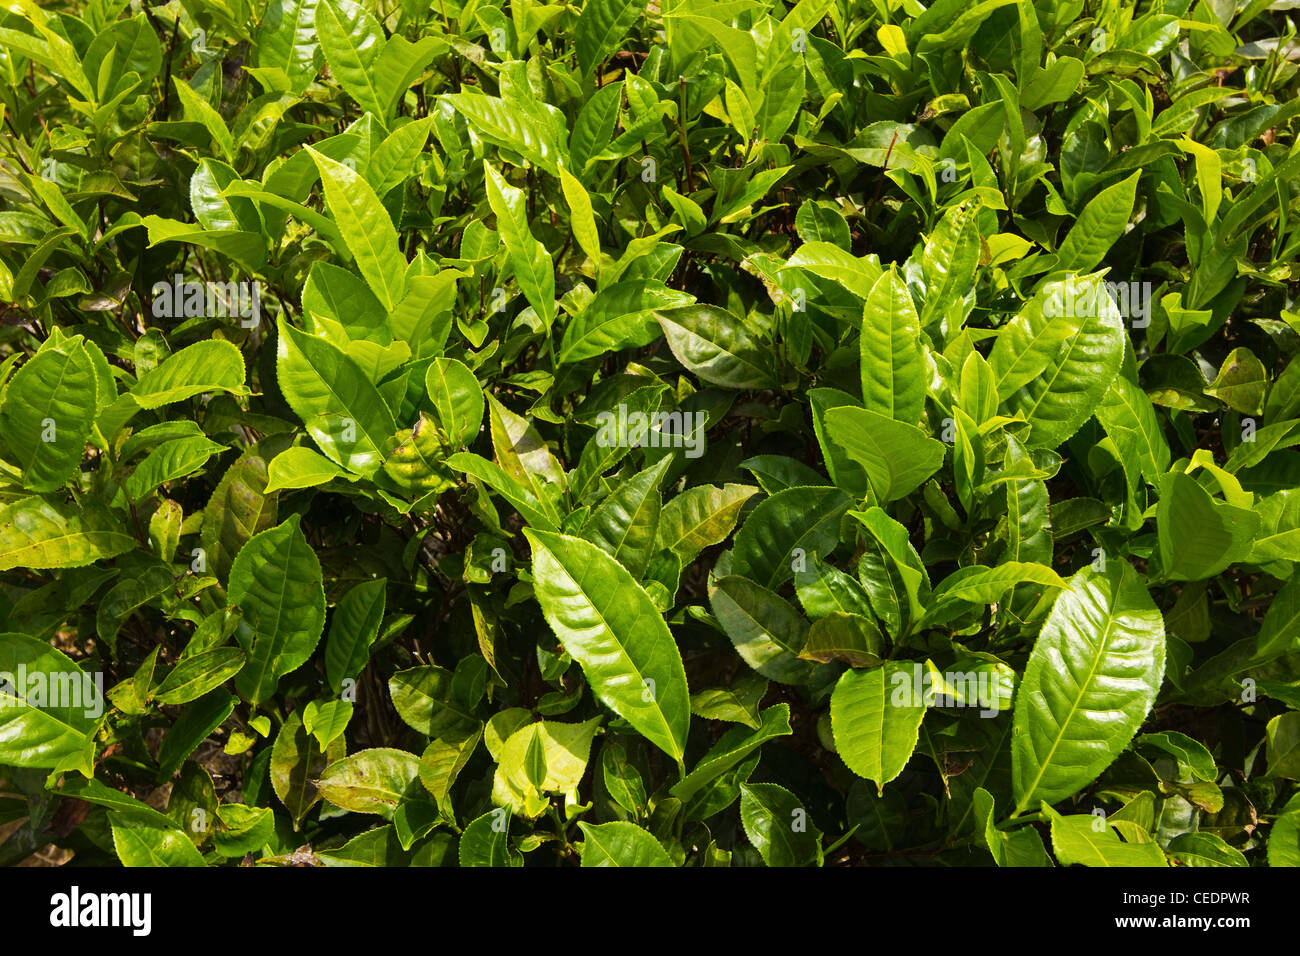 Strongly flavoured, aromatic high altitude Uva tea growing in the Namunukula Mountains; Ella, Central Highlands, Stock Photo